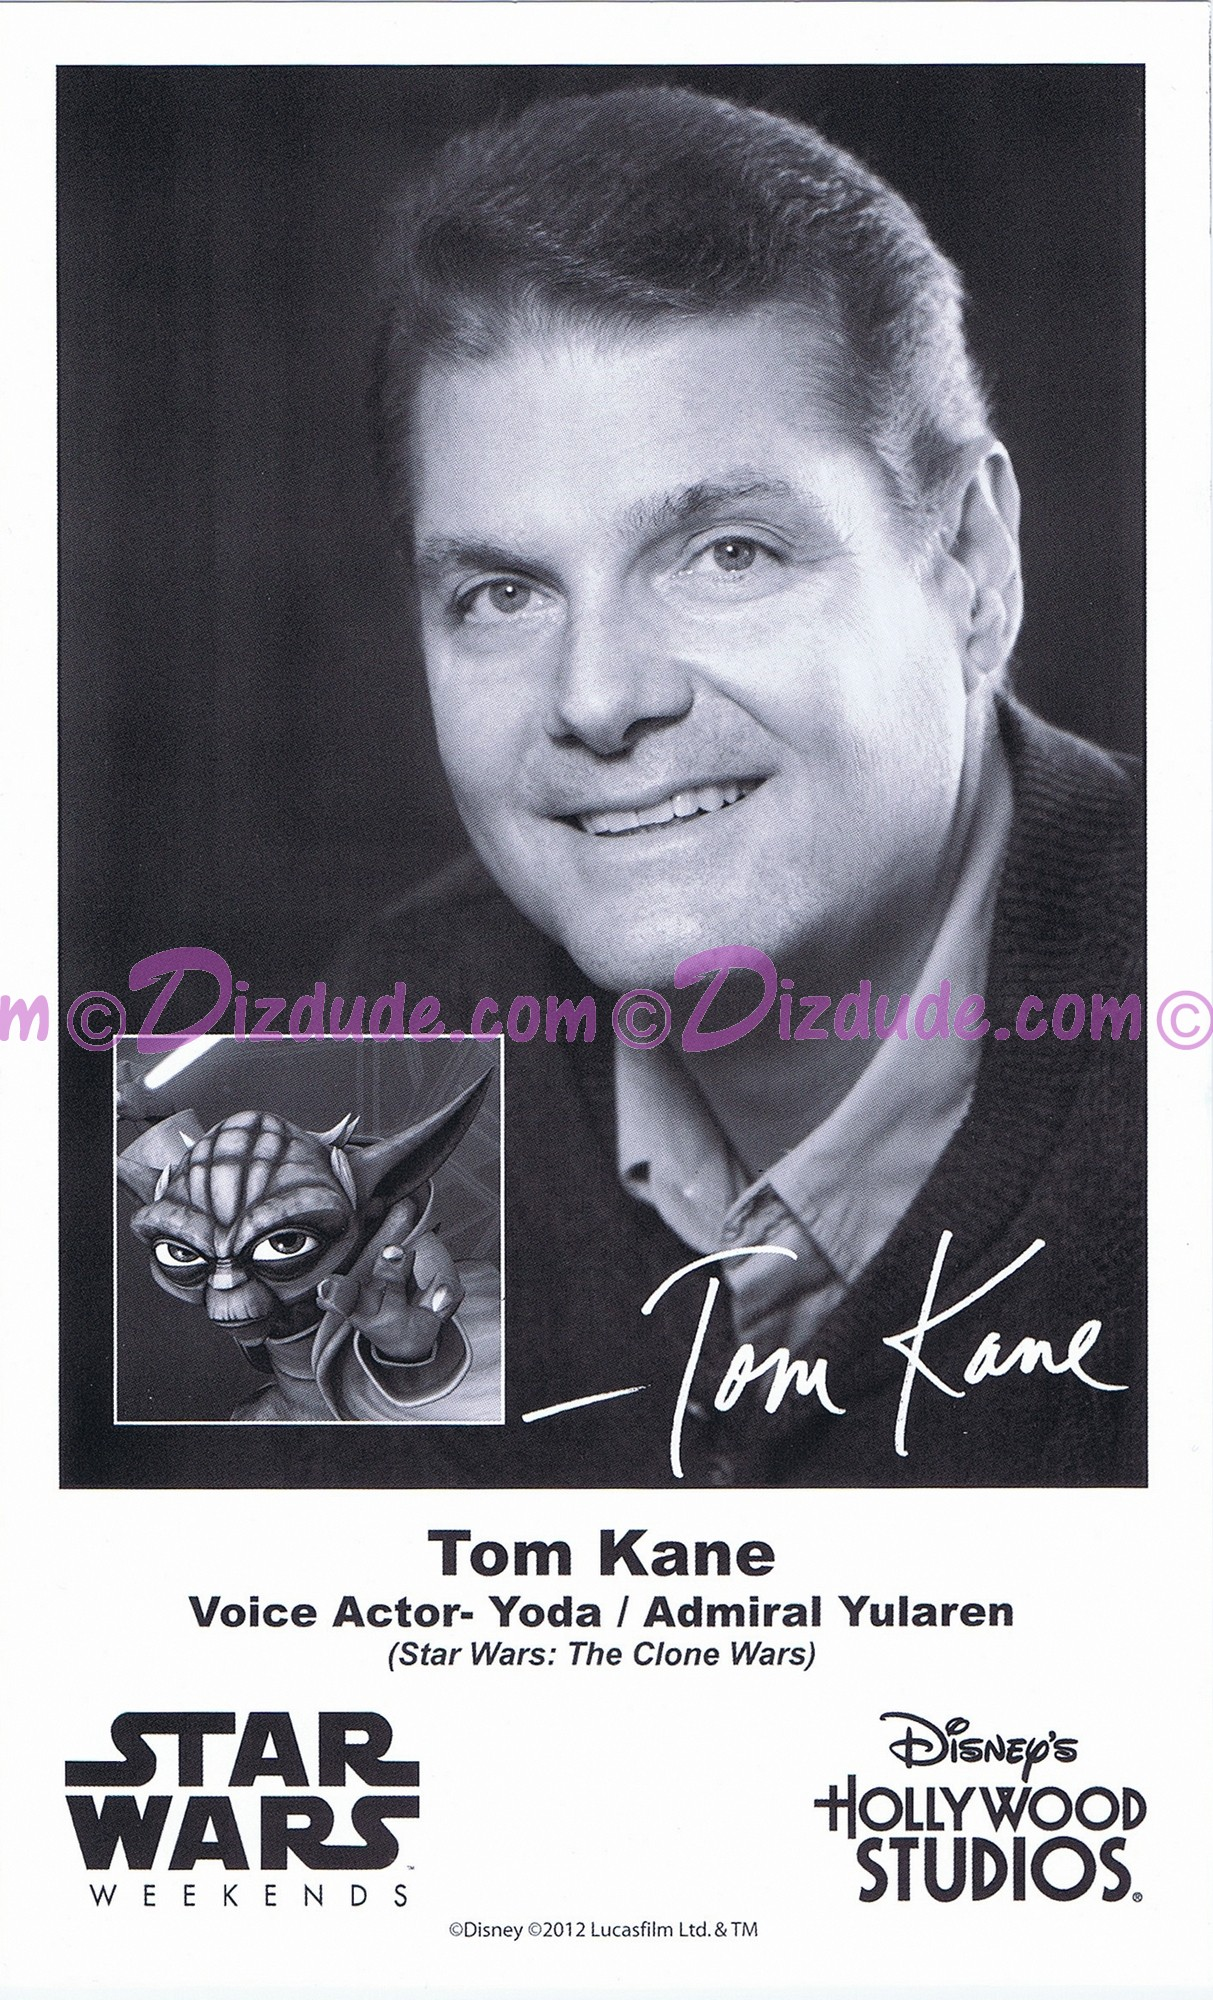 Tom Kane the voice of Yoda & Admiral Yularen Presigned Official Star Wars Weekends 2012 Celebrity Collector Photo